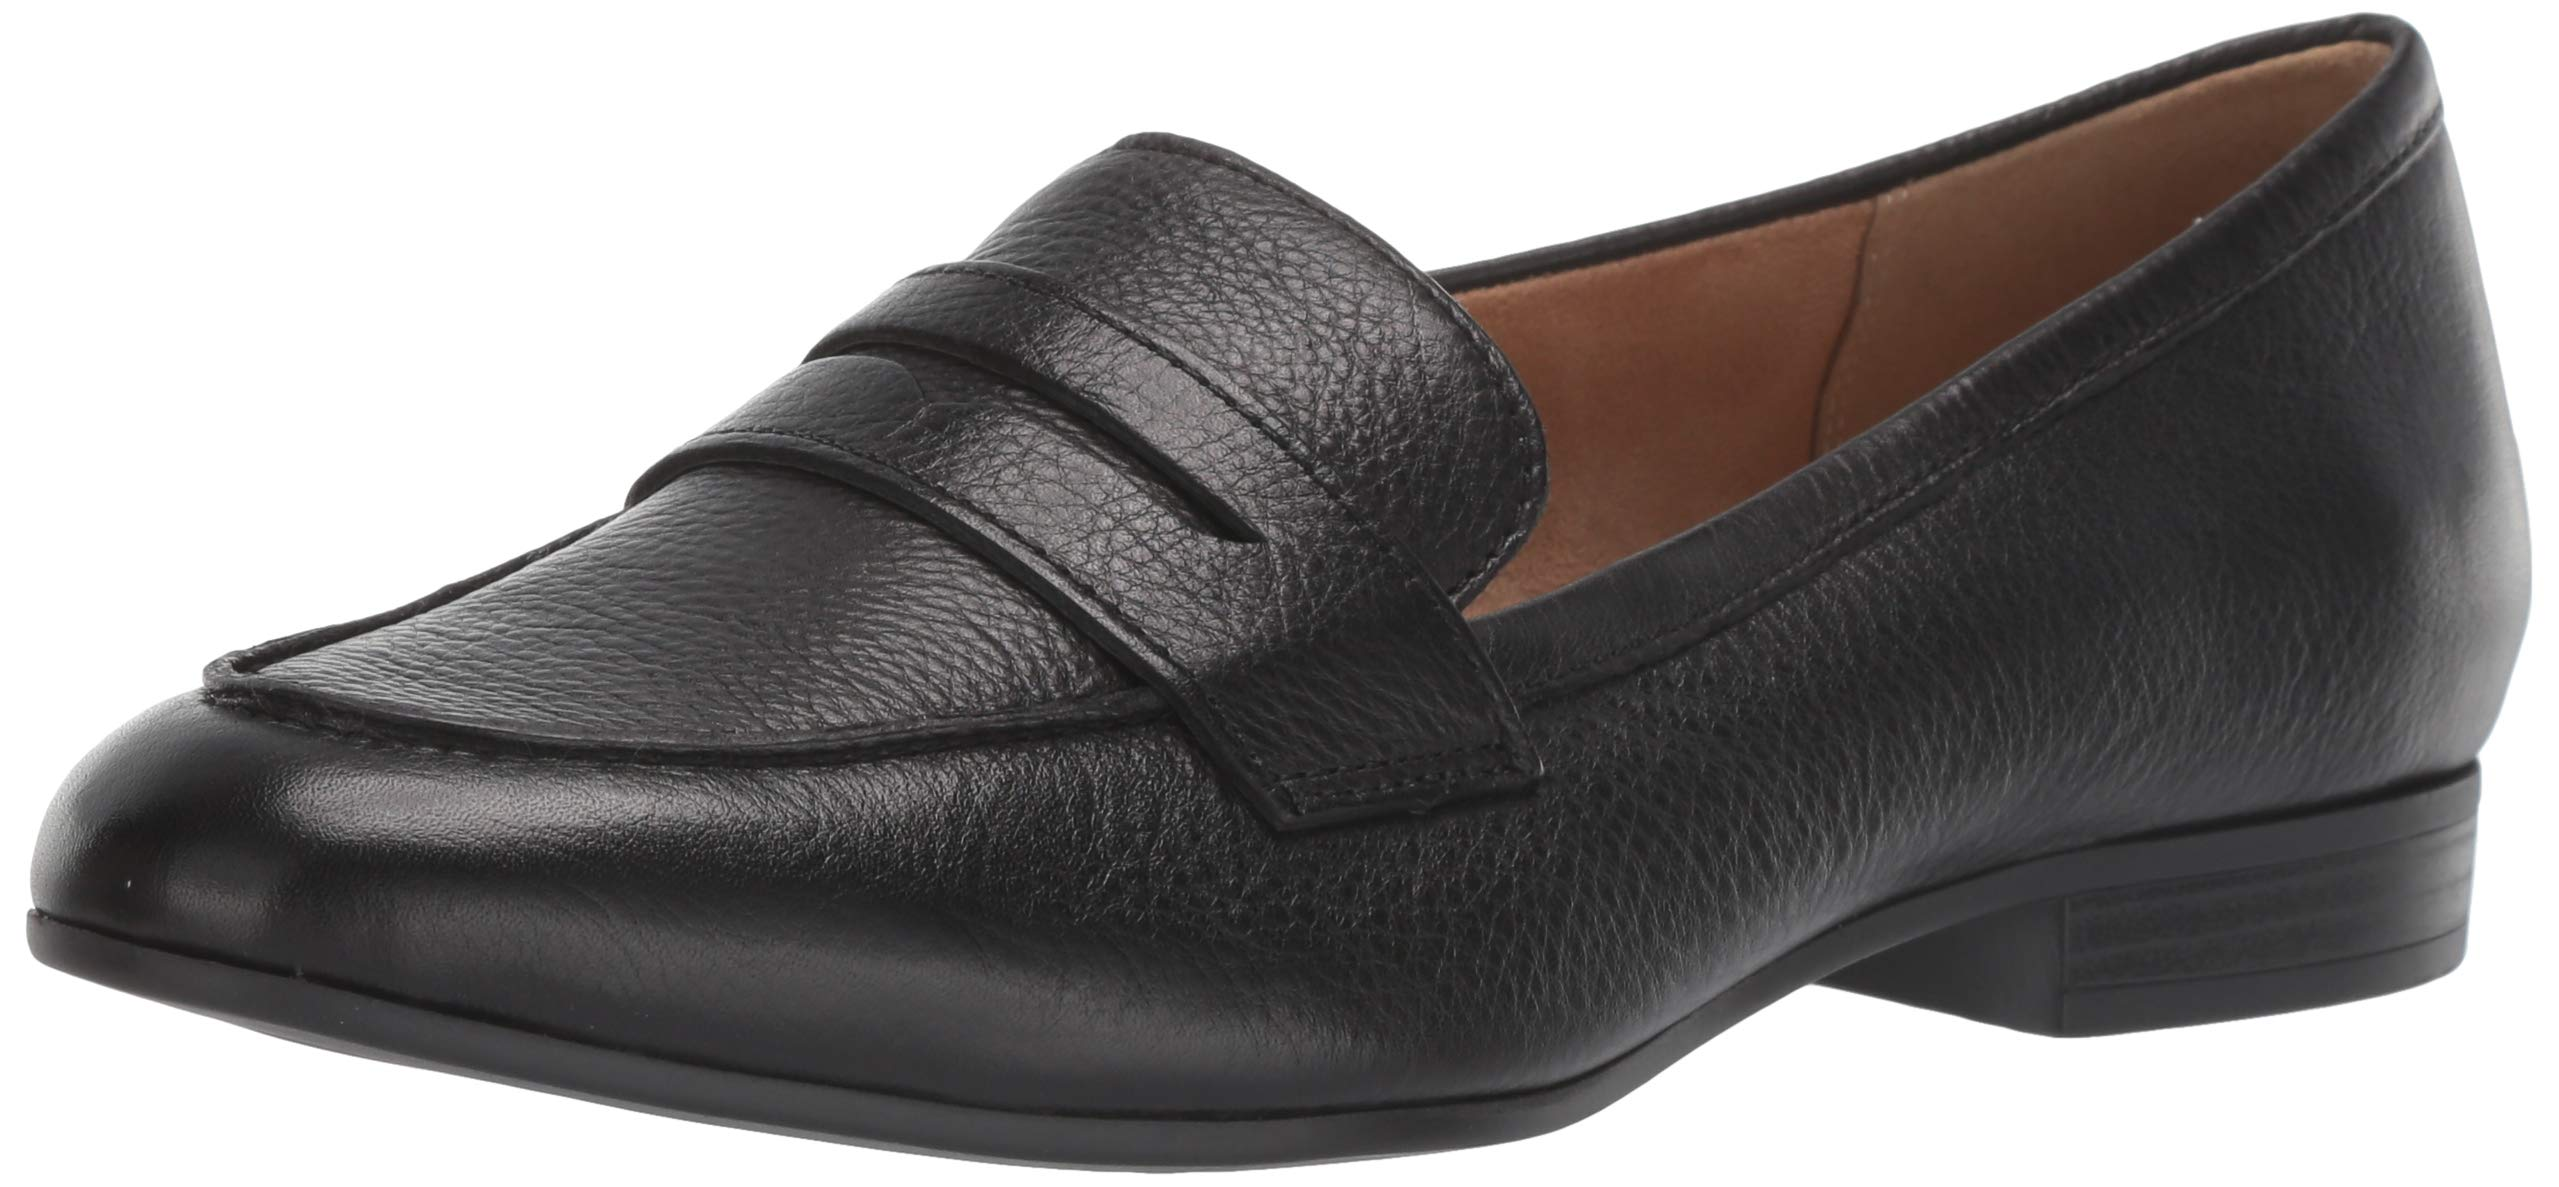 Naturalizer Women's Juliette Loafer Flat, Black Leather, 8.5 W US by Naturalizer